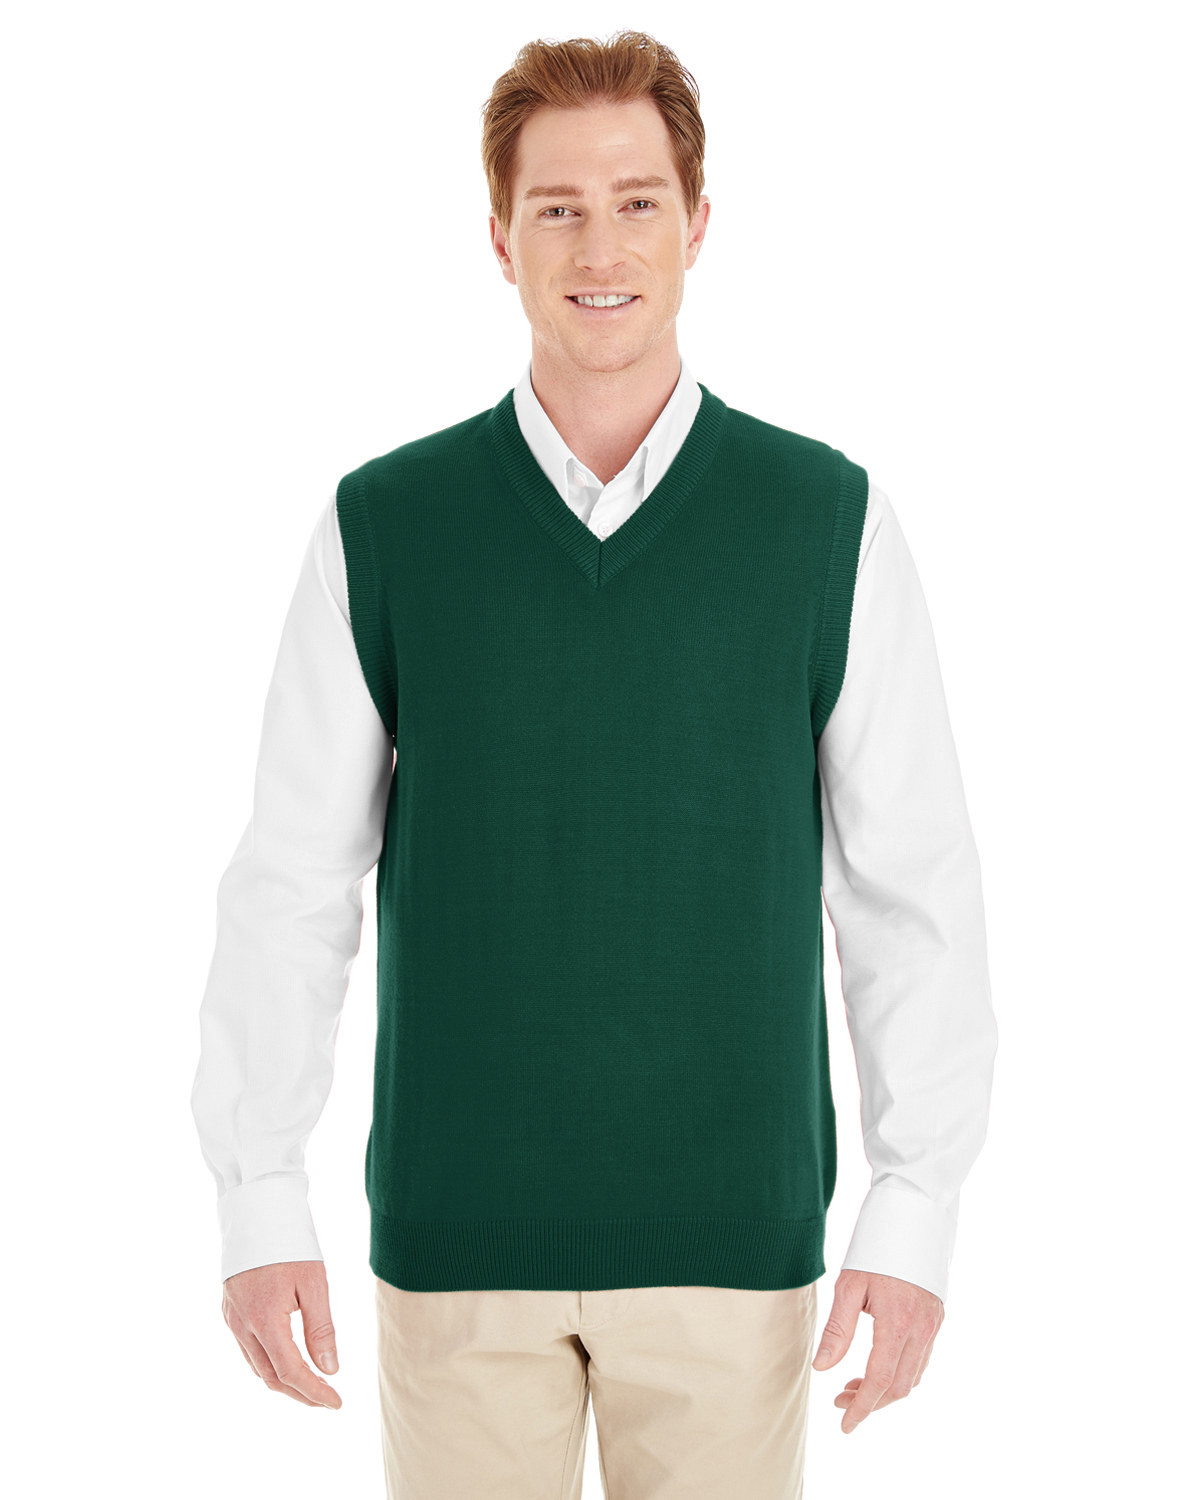 Harriton M415W - Ladies' Pilbloc™ V-Neck Sweater Vest $12.49 - Sweater